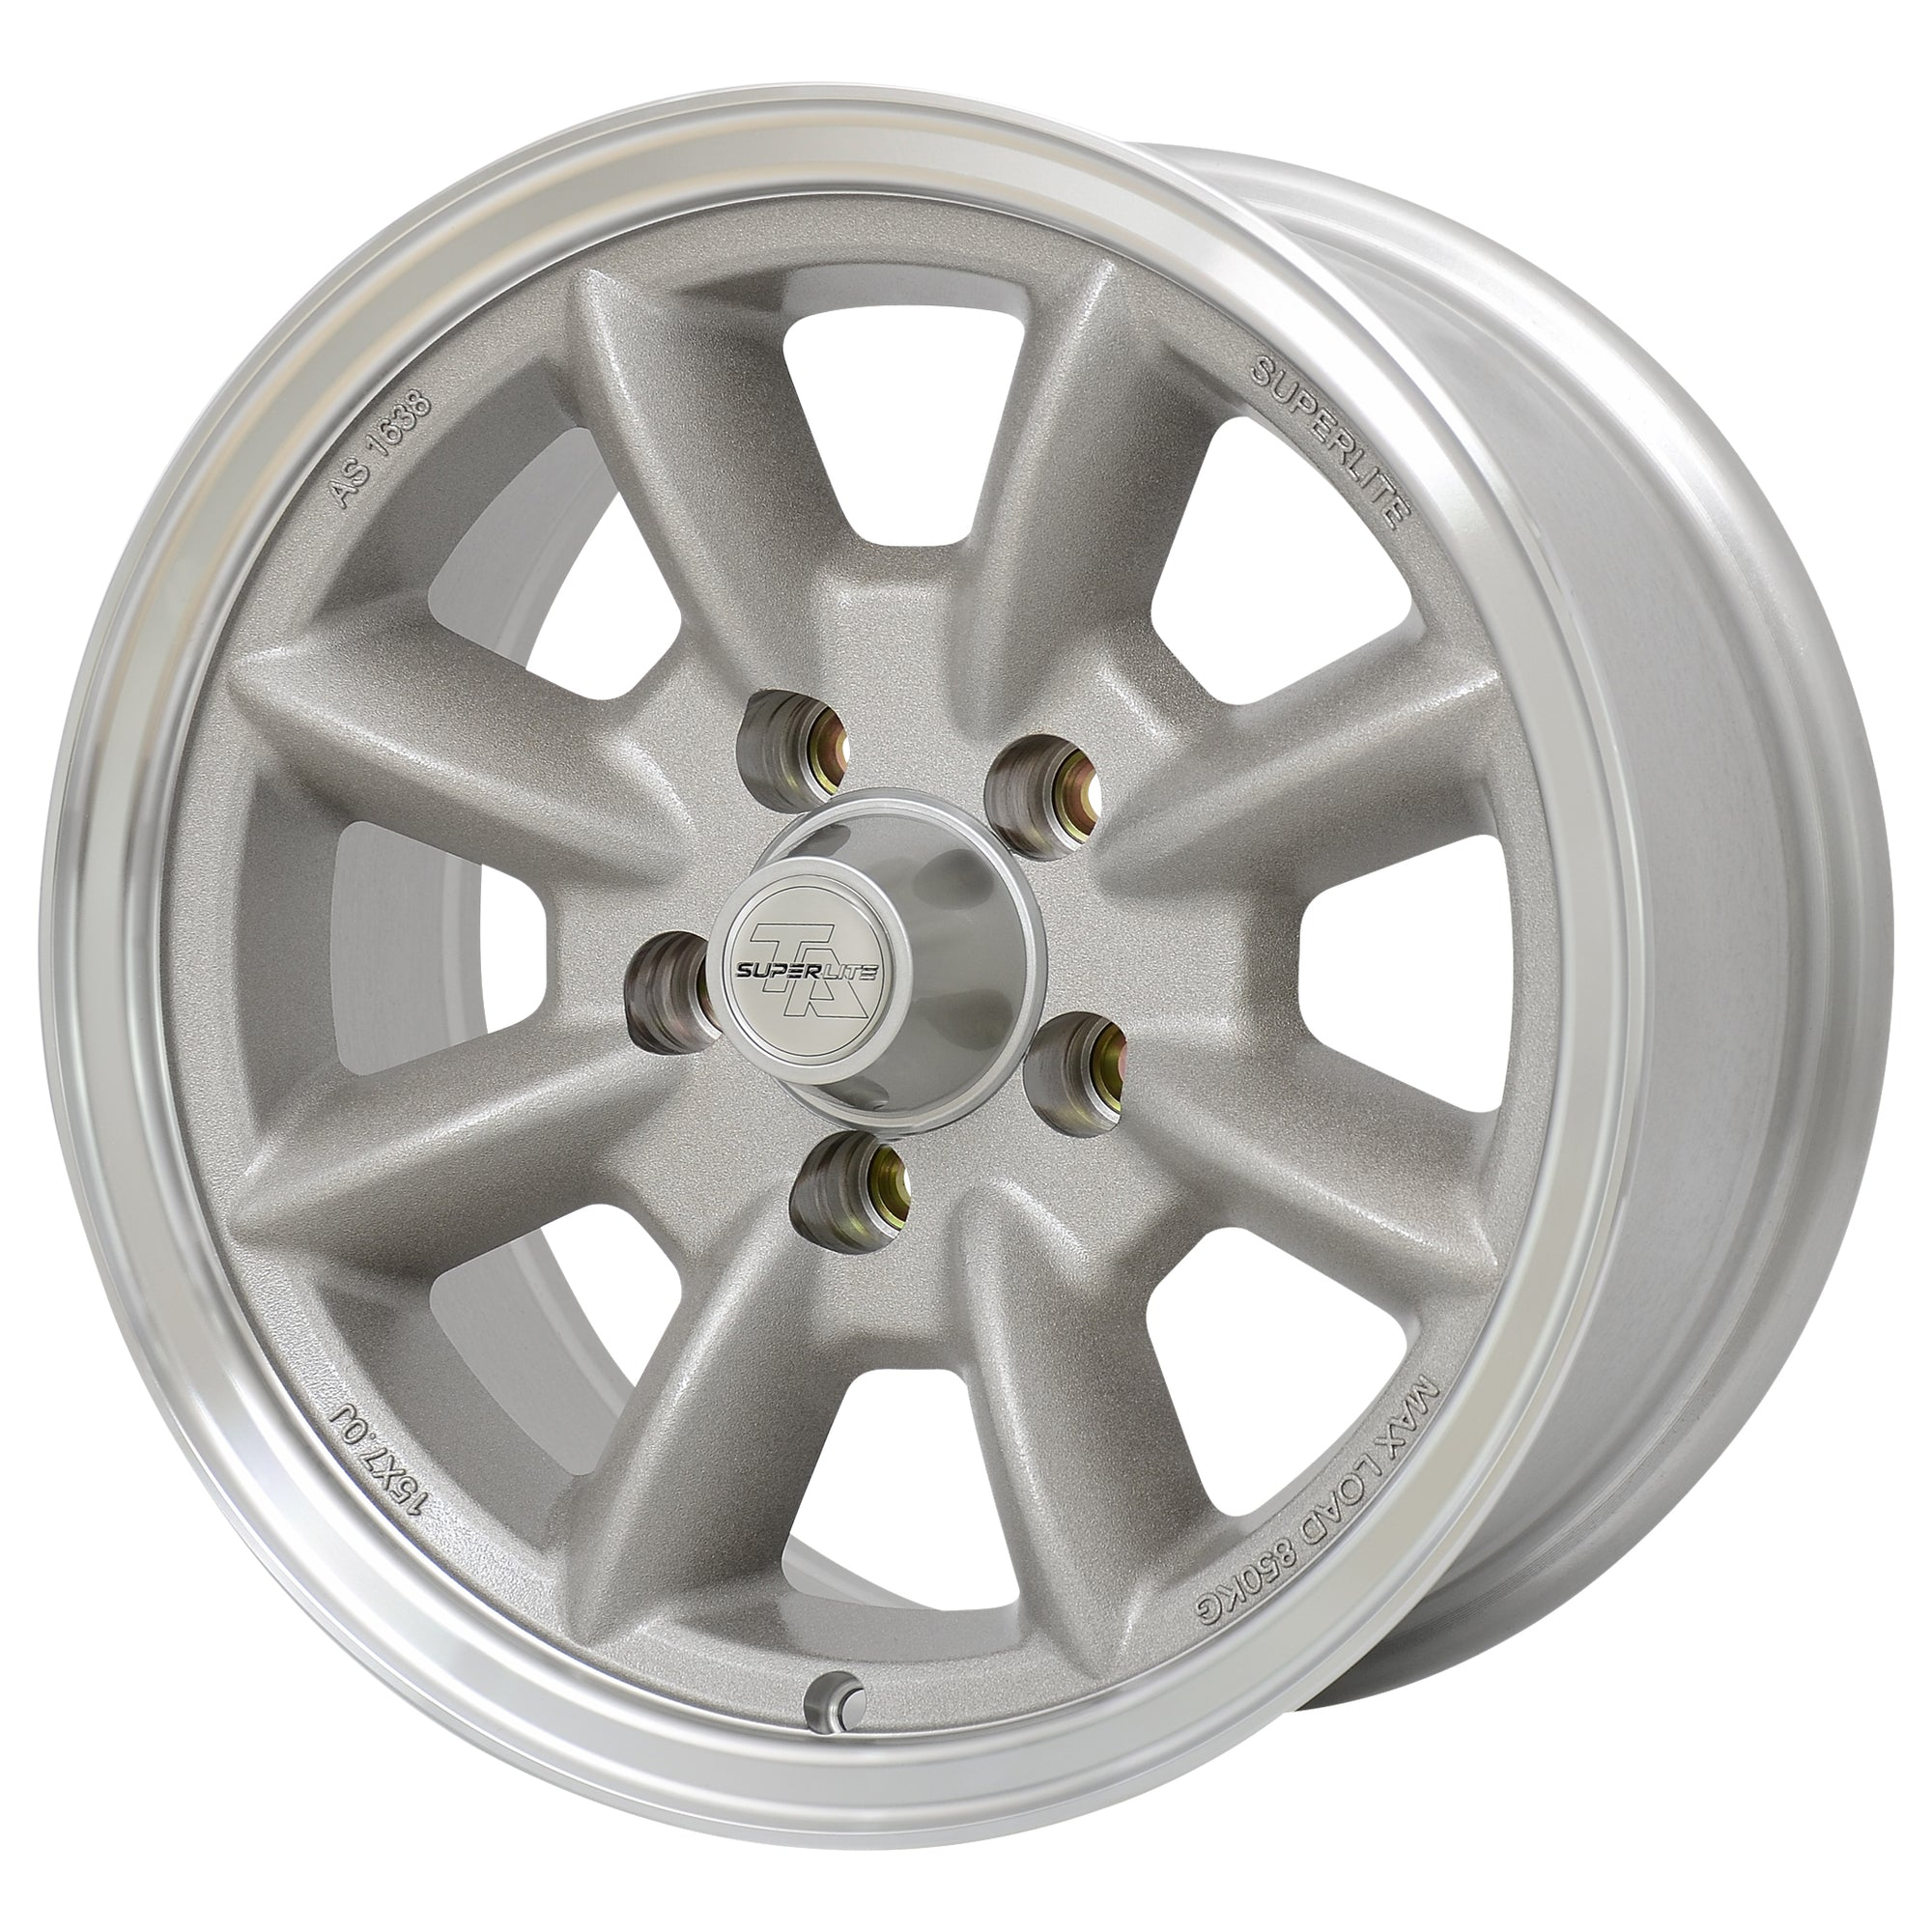 "Superlite 15x7 5x114.3 4"" Backspacing 73mm Centre Bore SPL157140"